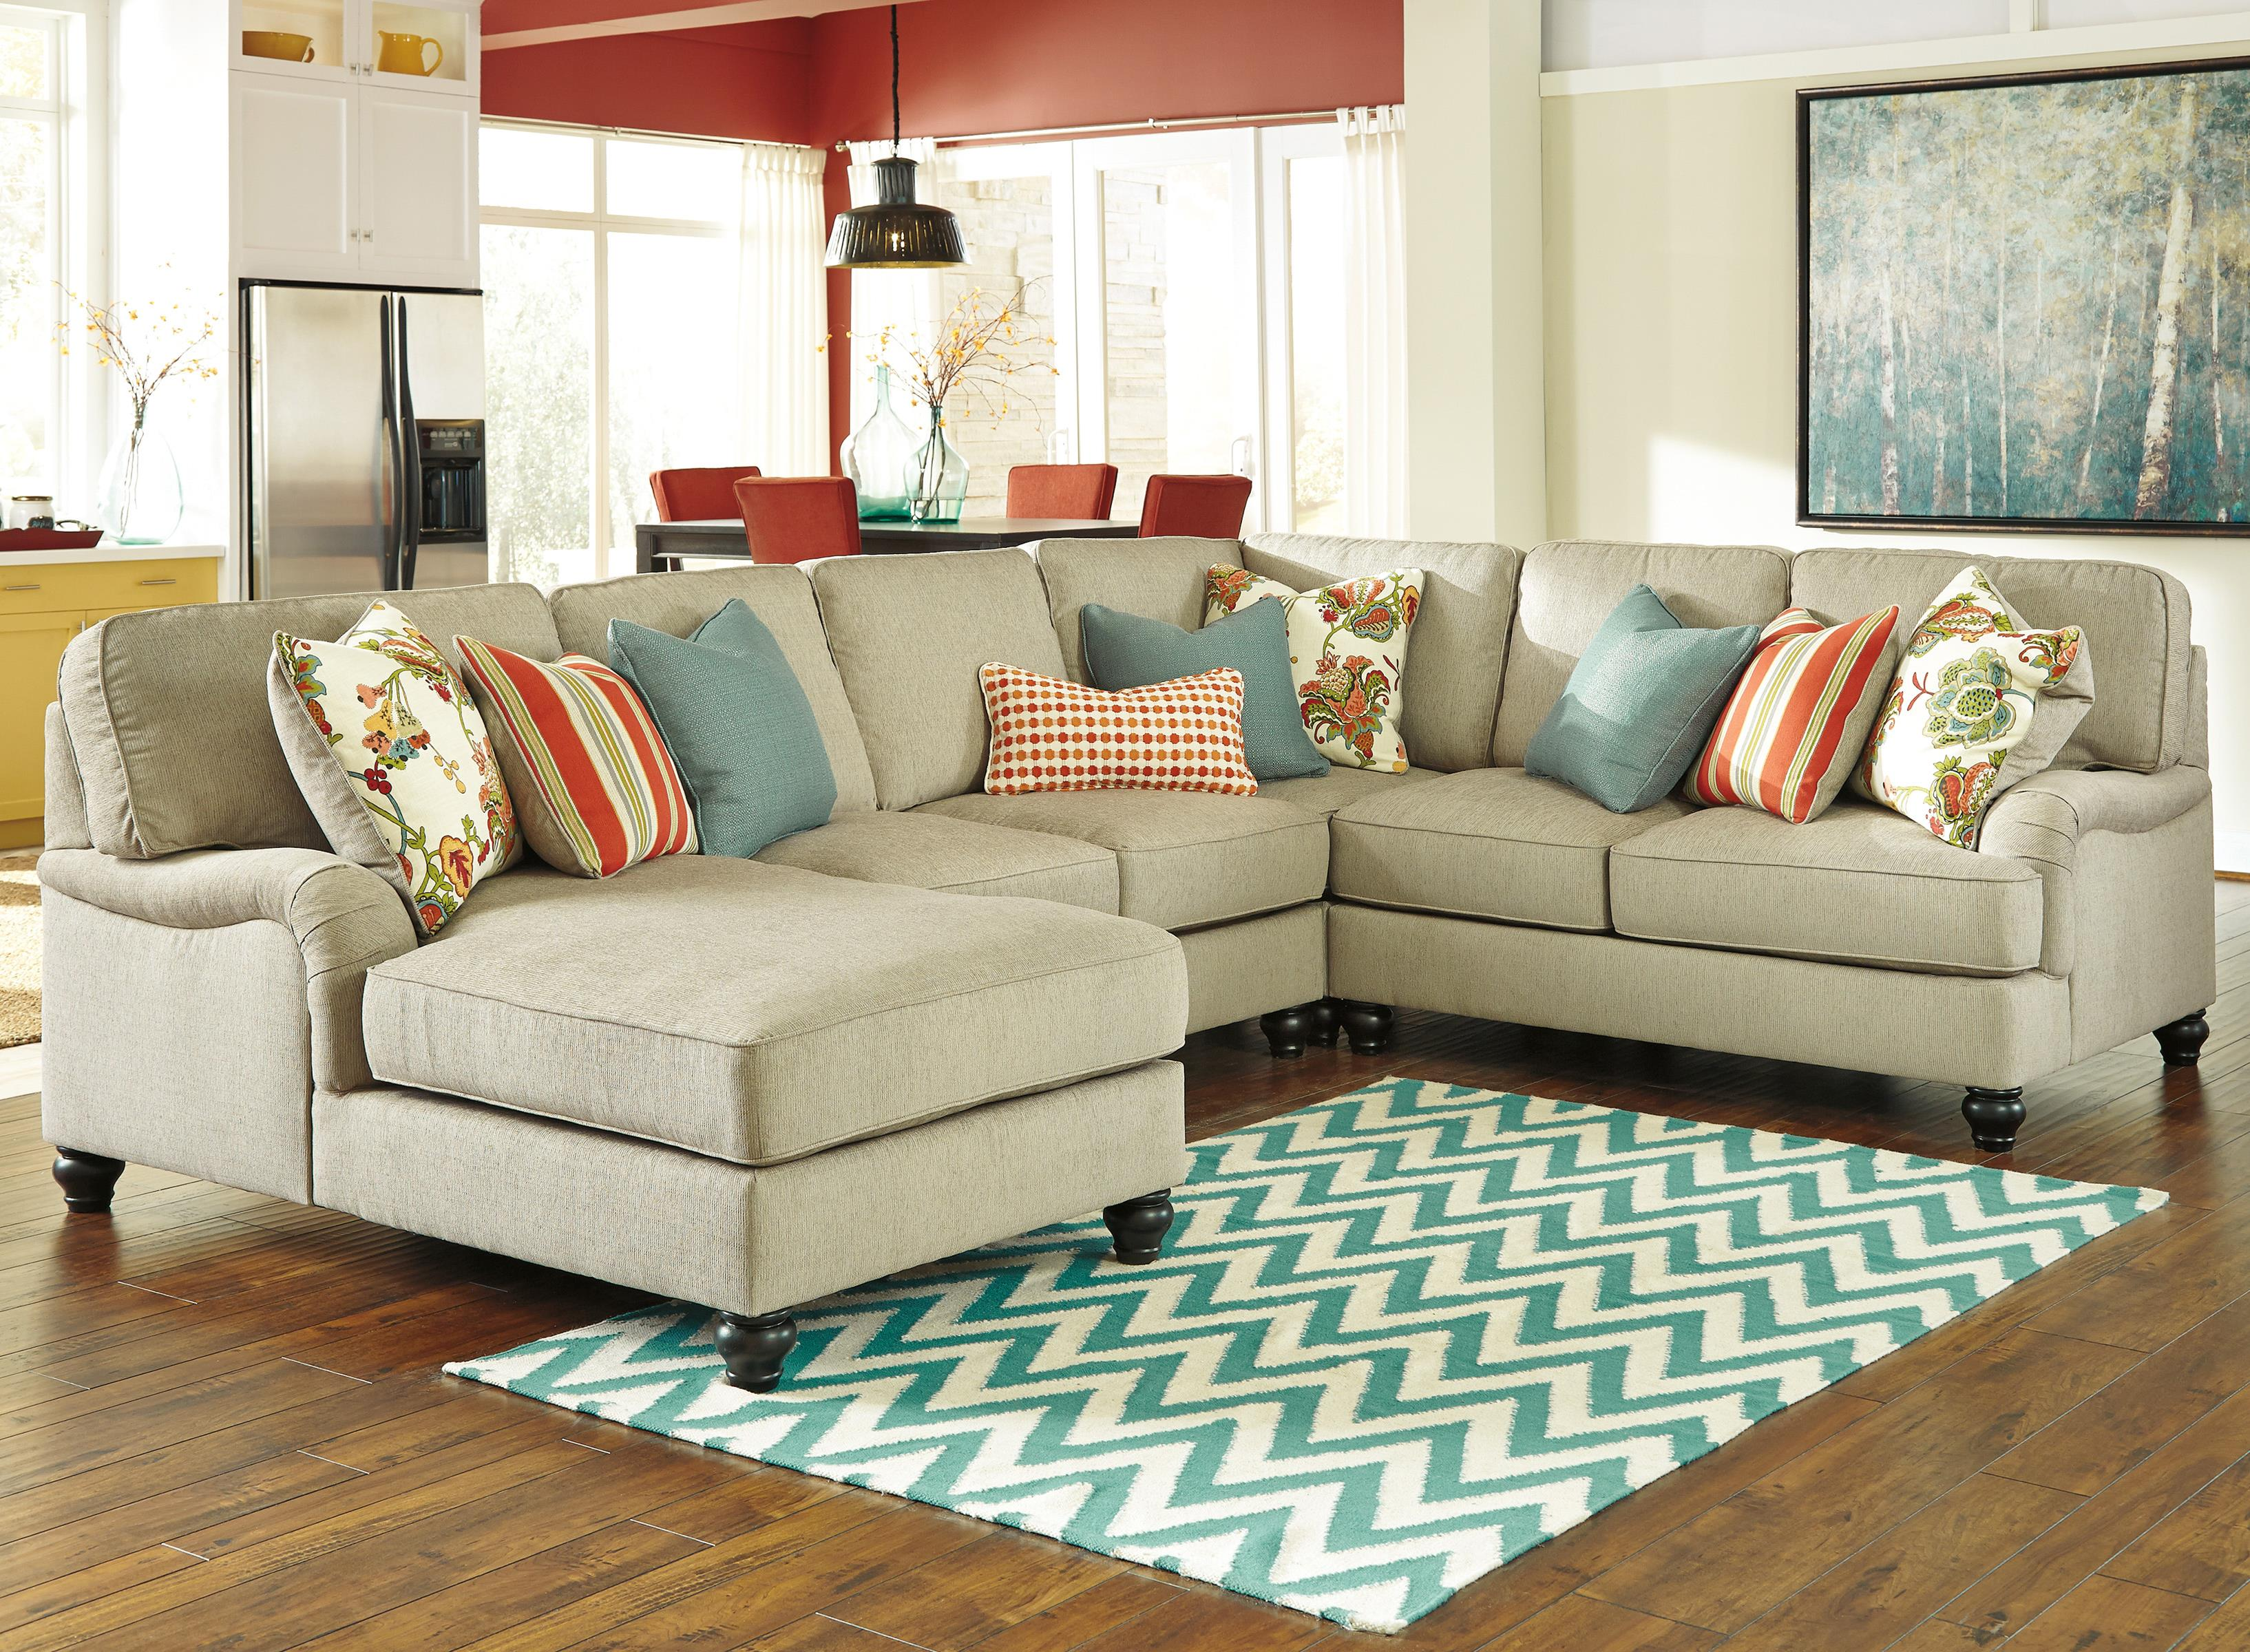 Ashley/Benchcraft Kerridon 4-Piece Sectional with Left Chaise - Item Number: 2630016+34+77+56